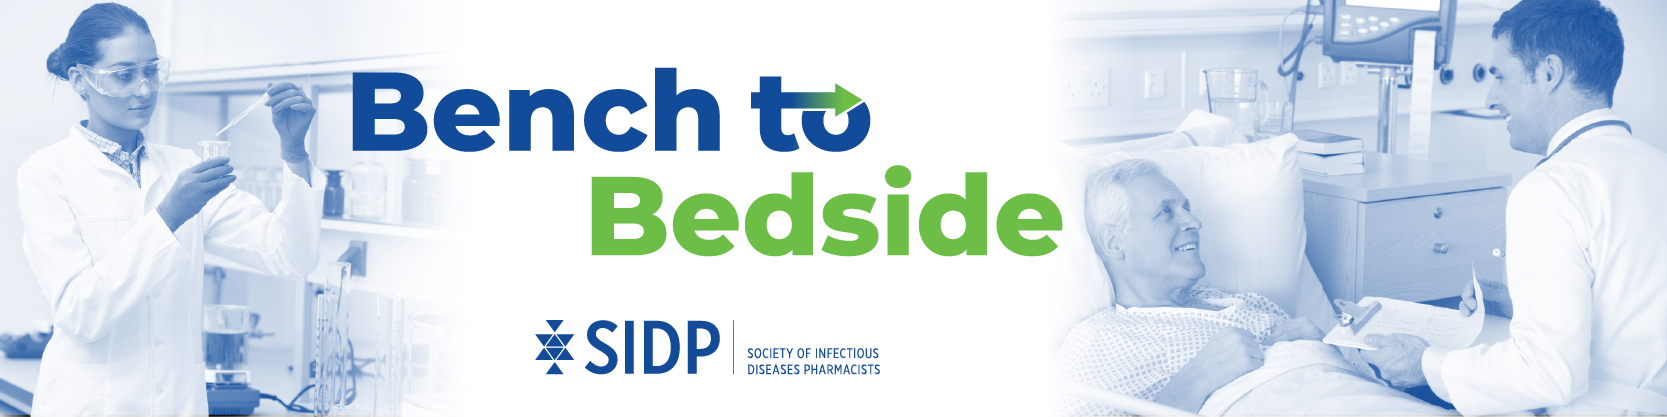 Society of Infectious Diseases Pharmacists logo